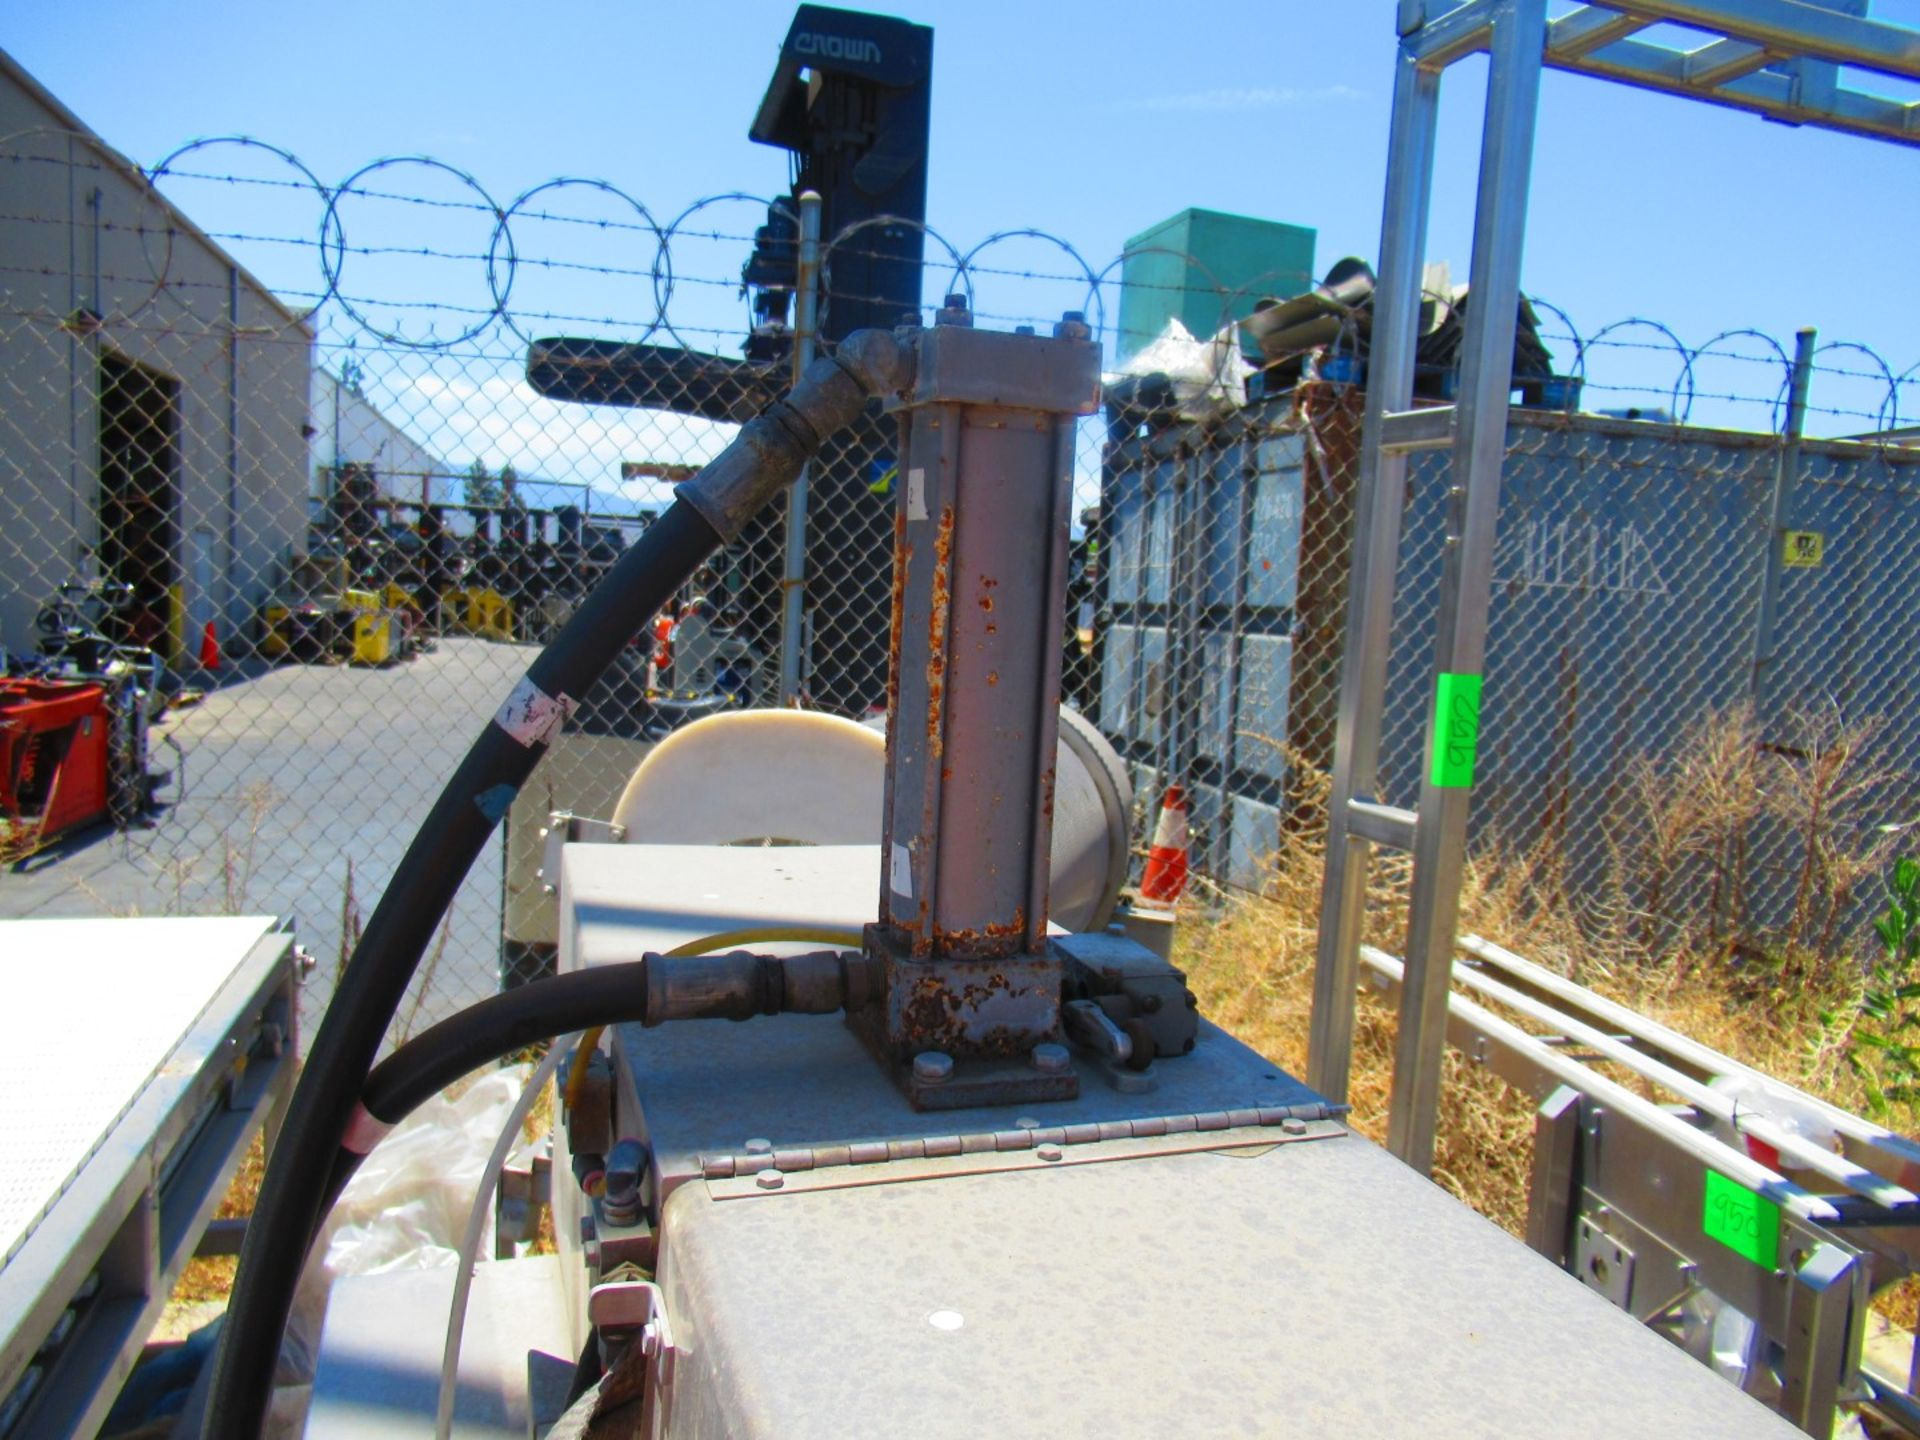 Hydraulic Can Crusher - Image 5 of 6